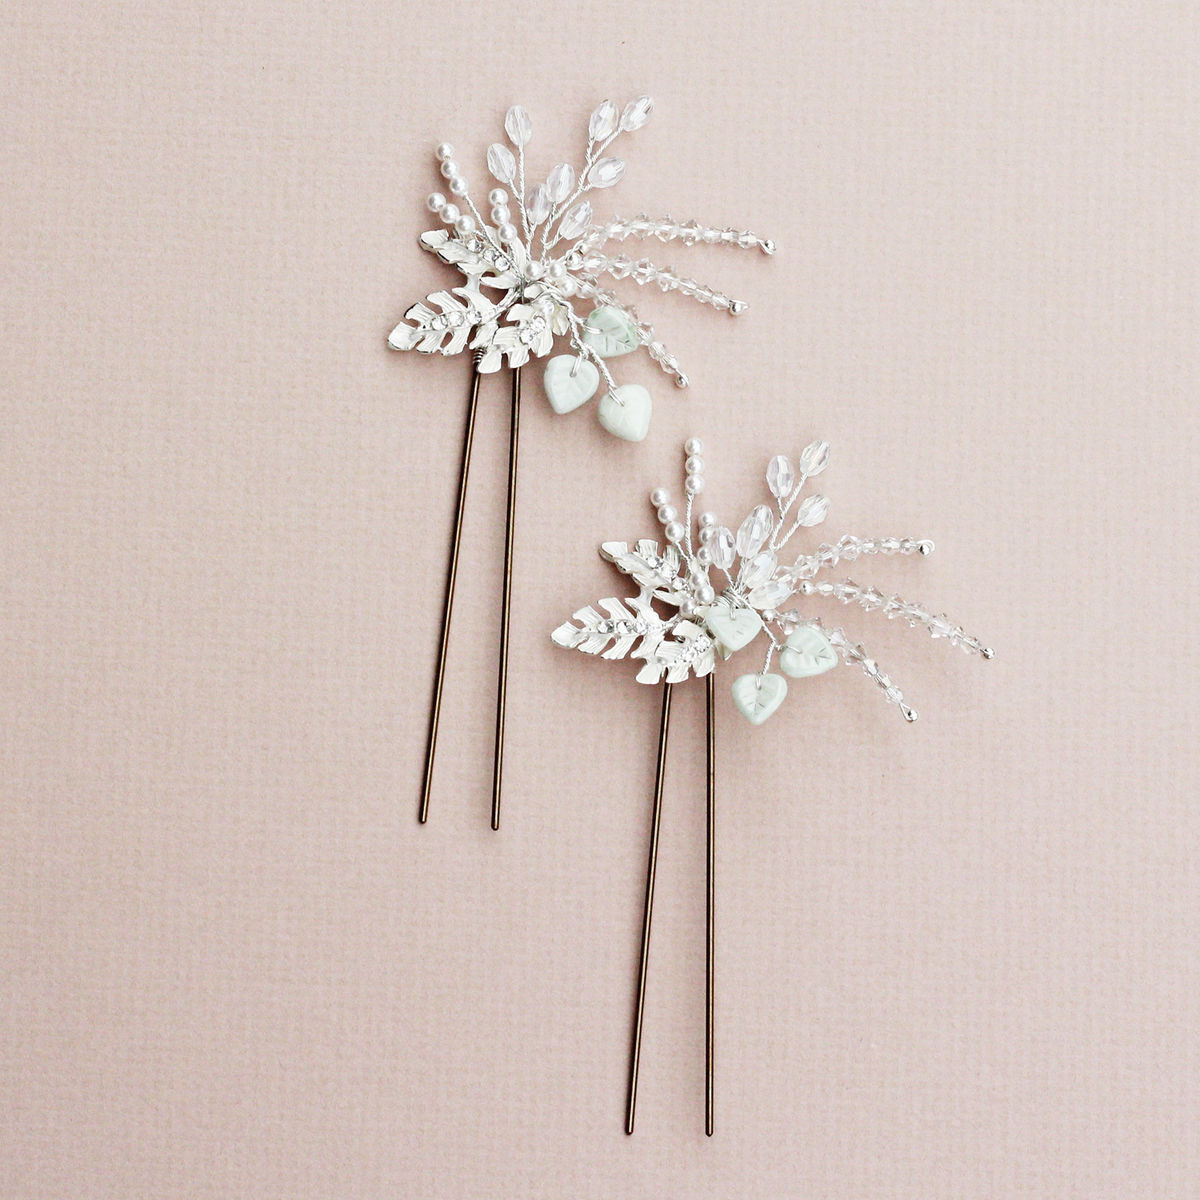 Olive hair pin - product images  of